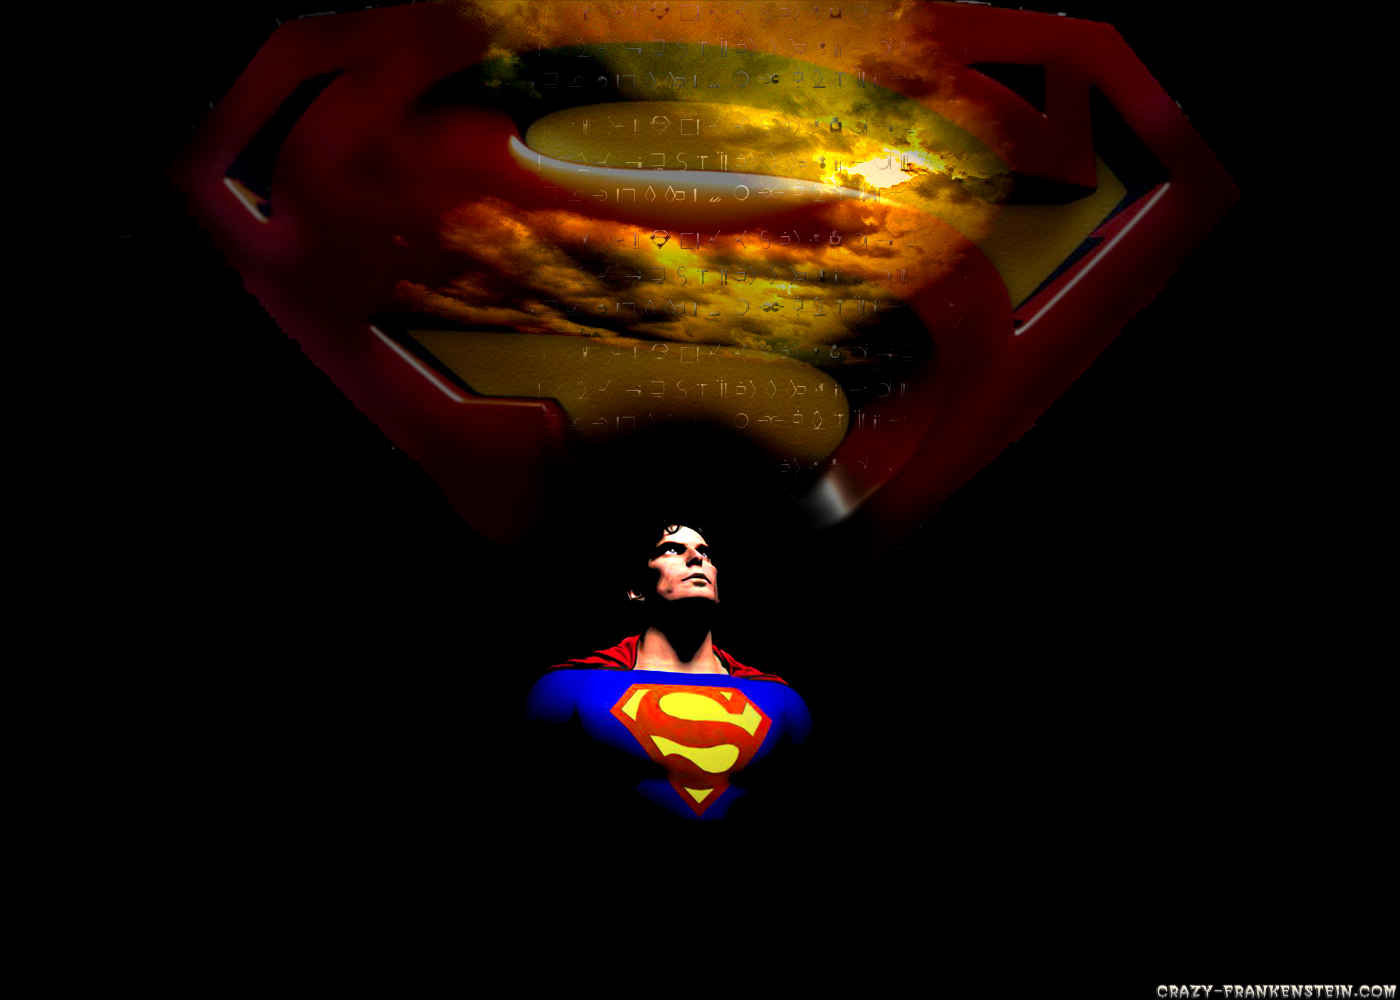 Hd Wallpaper Superman Download Wallpaper DaWallpaperz 1400x1000